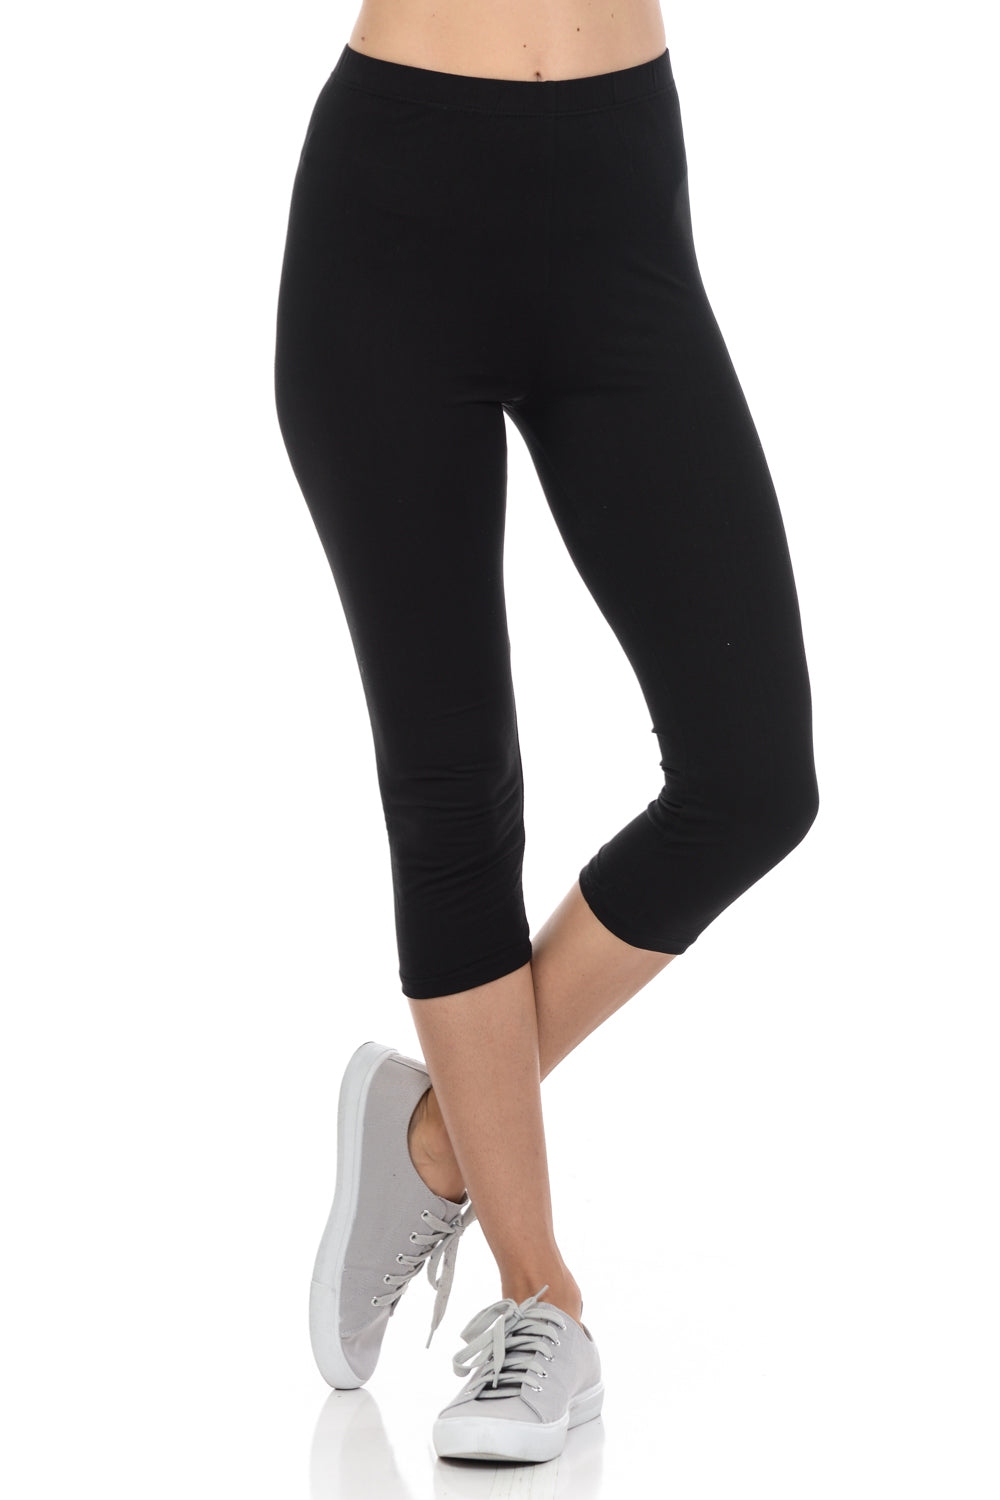 262eacec07 Womens Capri leggings Soft and Streched Cropped leggings for Women by  bluensquare- Regular ONE Size